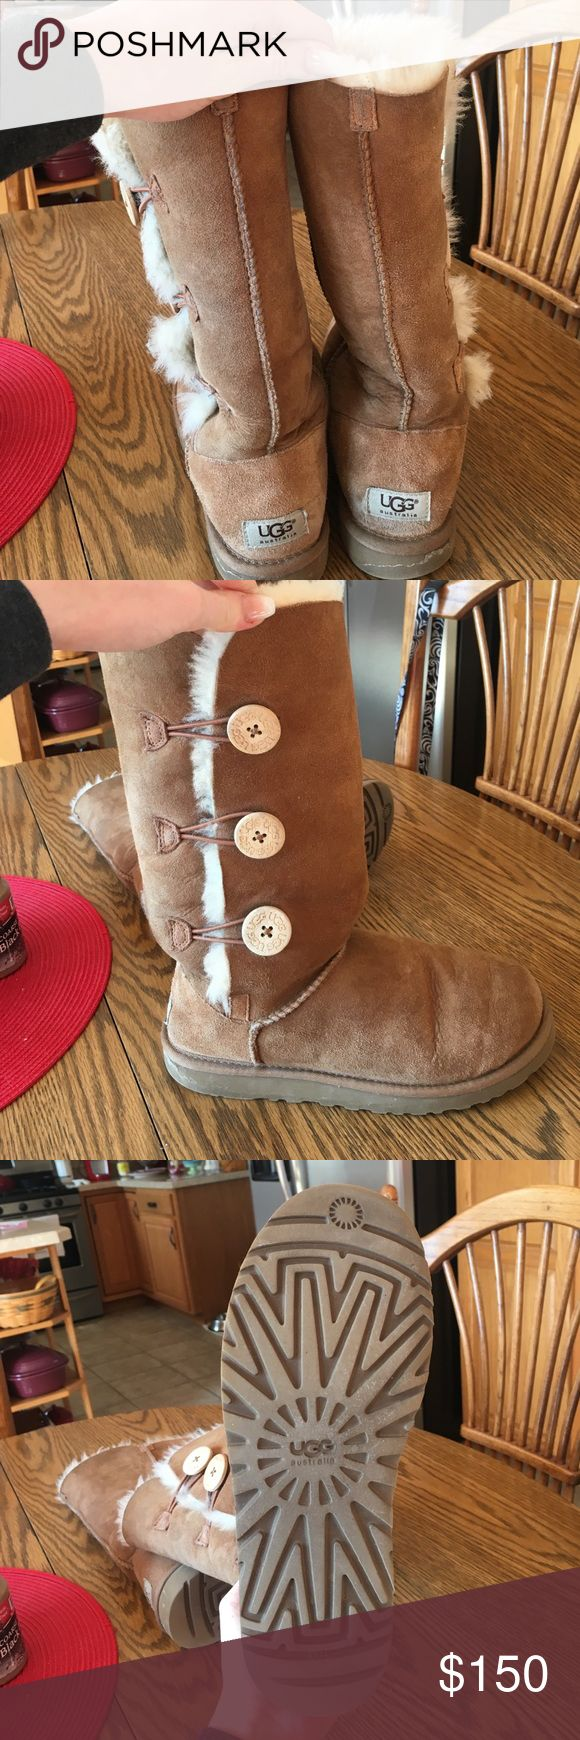 Tall UGG boots with button I got these about a year ago, I wore them about 10-15 times. Really good condition, waterproofed when I first got them. Price is negotiable! UGG Shoes Winter & Rain Boots